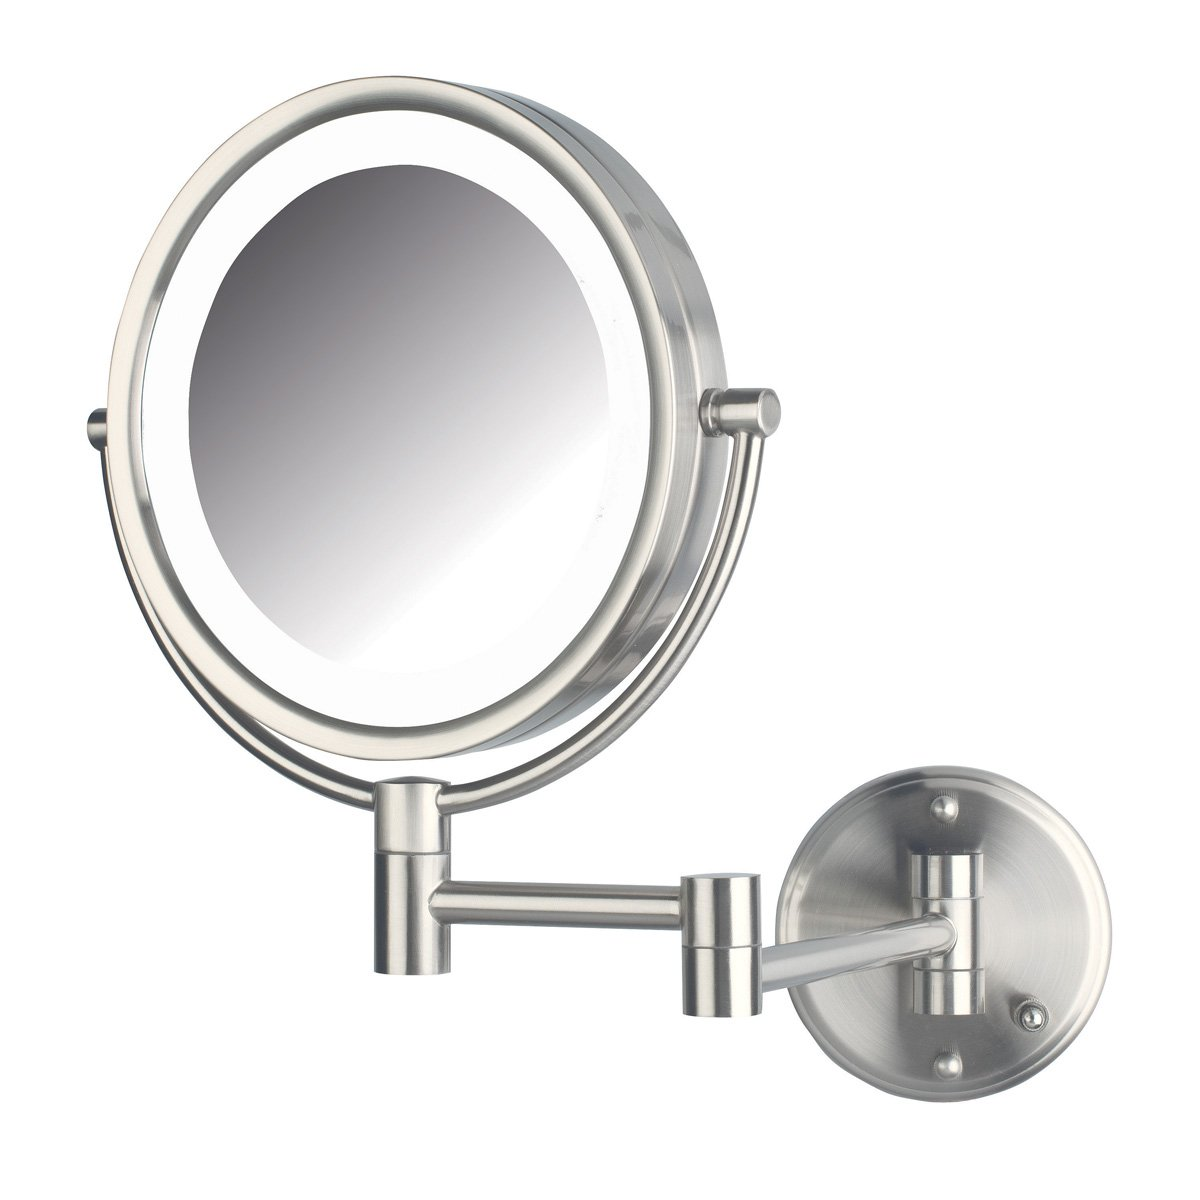 Jerdon HL88NLD 8.5-Inch LED Lighted Direct Wire Direct Wire Makeup Mirror with 8x Magnification, Nickel Finish by Jerdon